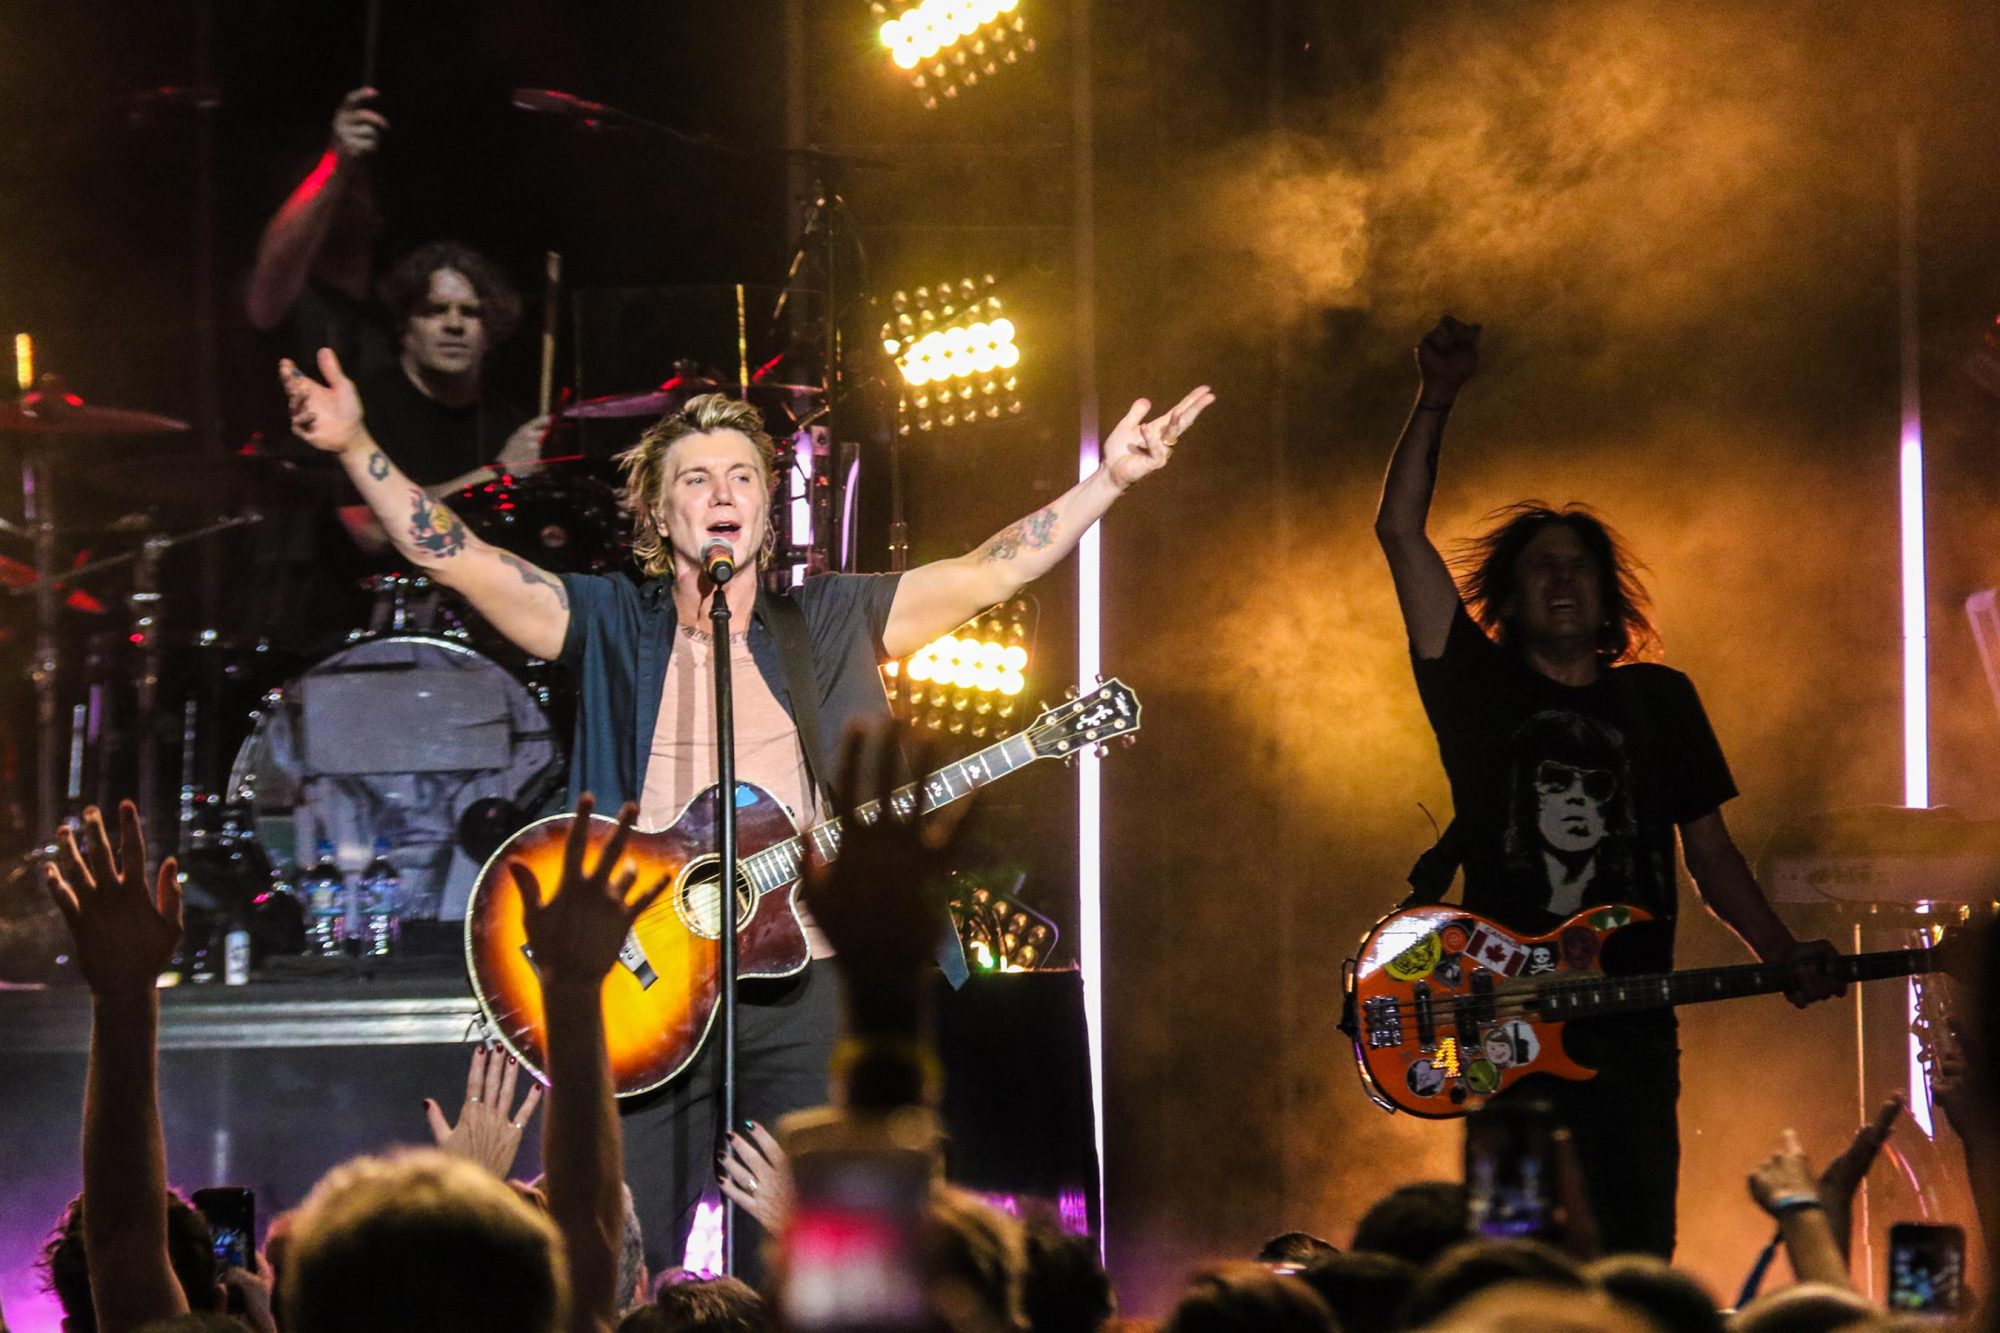 Goo Goo Dolls In Concert - Wantagh, New York